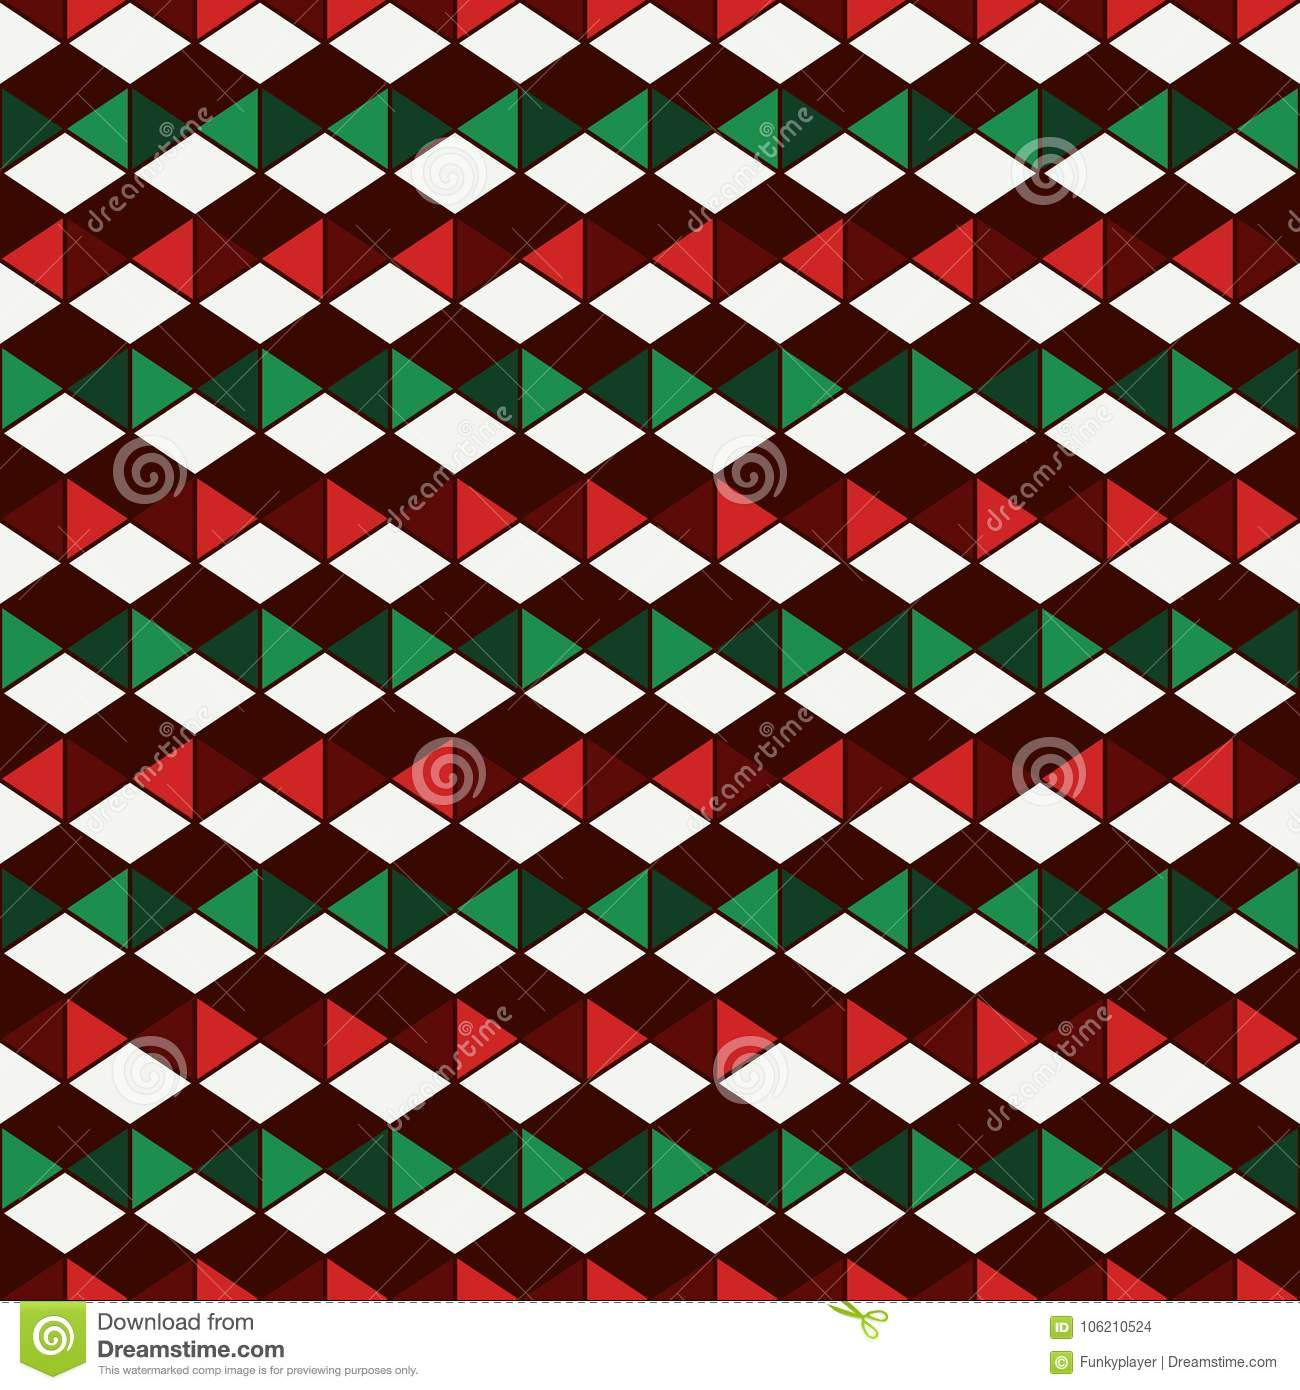 Sömlös modell i traditionella färger för jul med polygontessellation Geometriskt digitalt papper